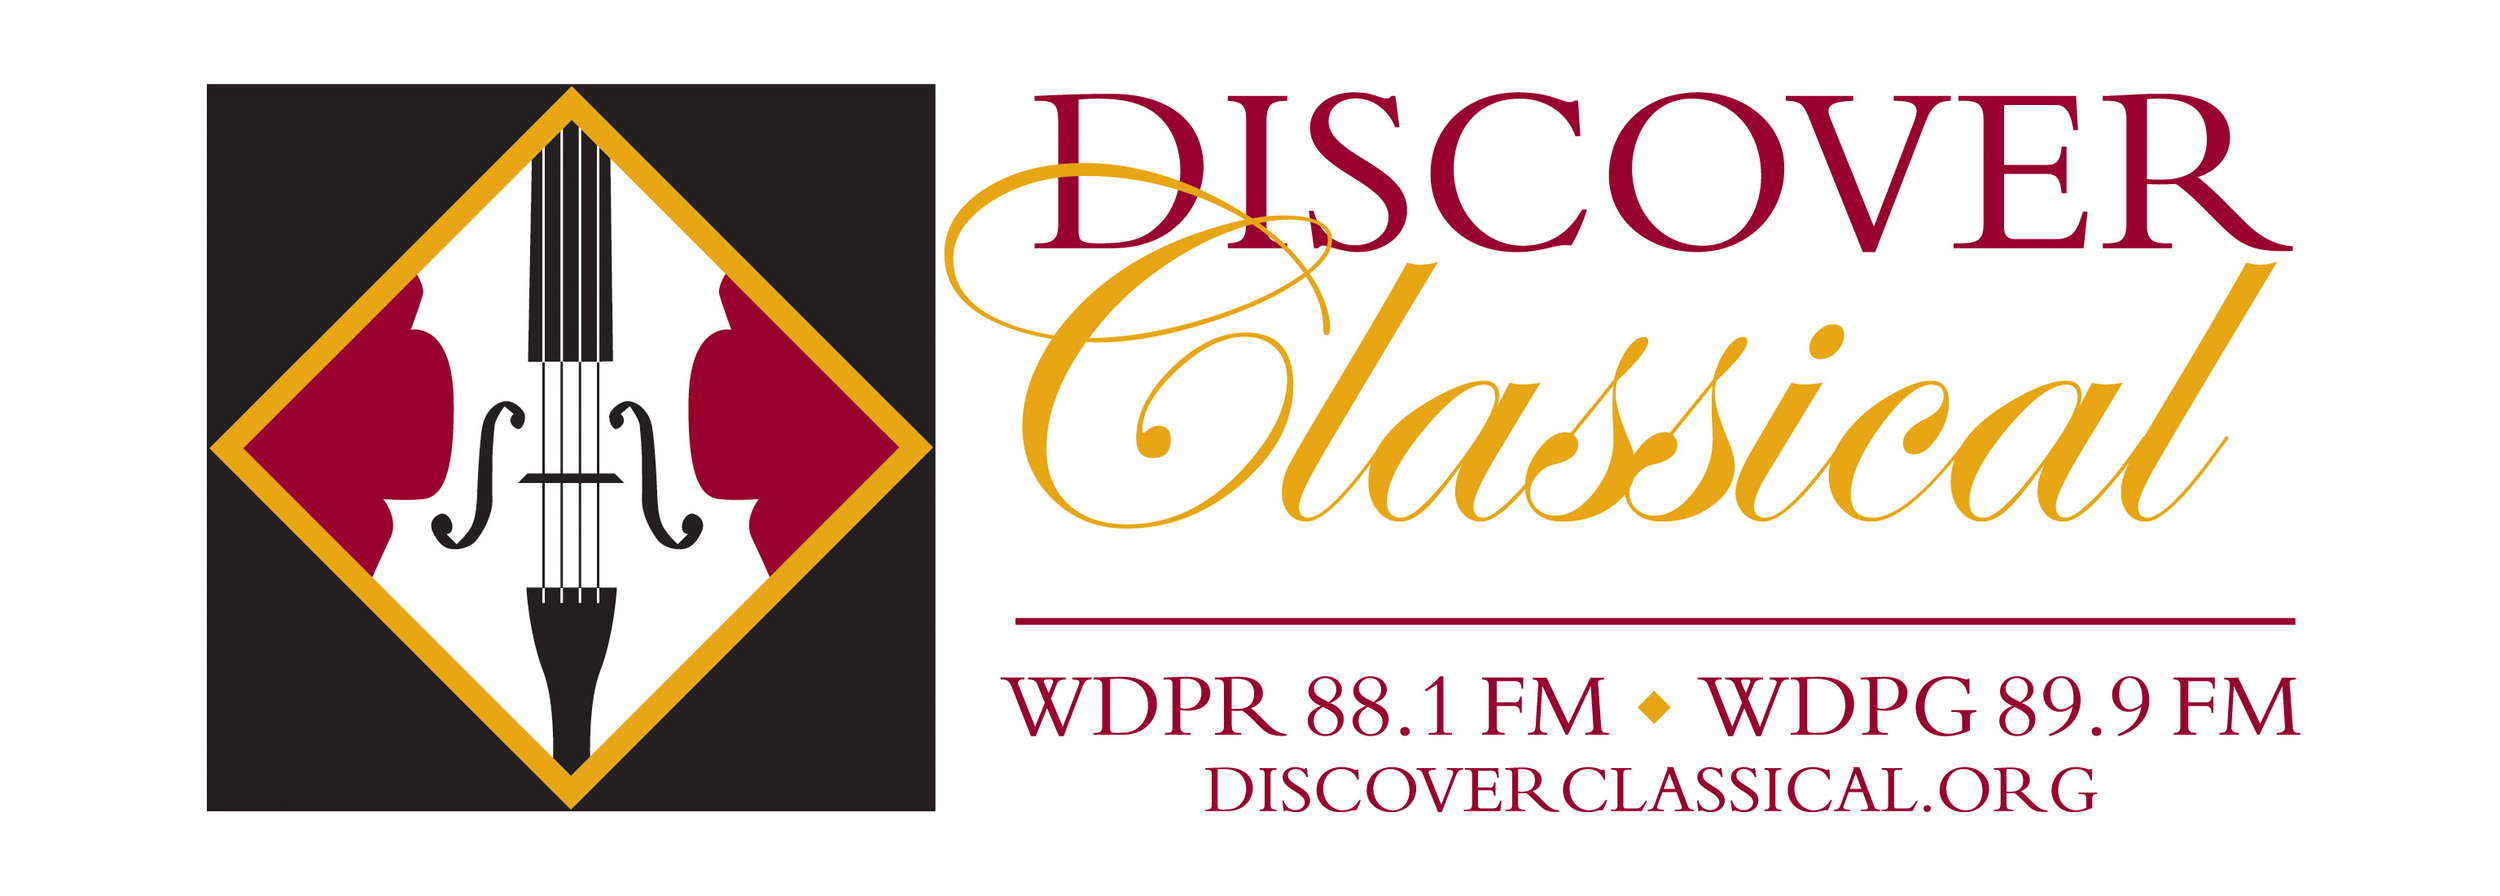 Discover Classical Banner.png